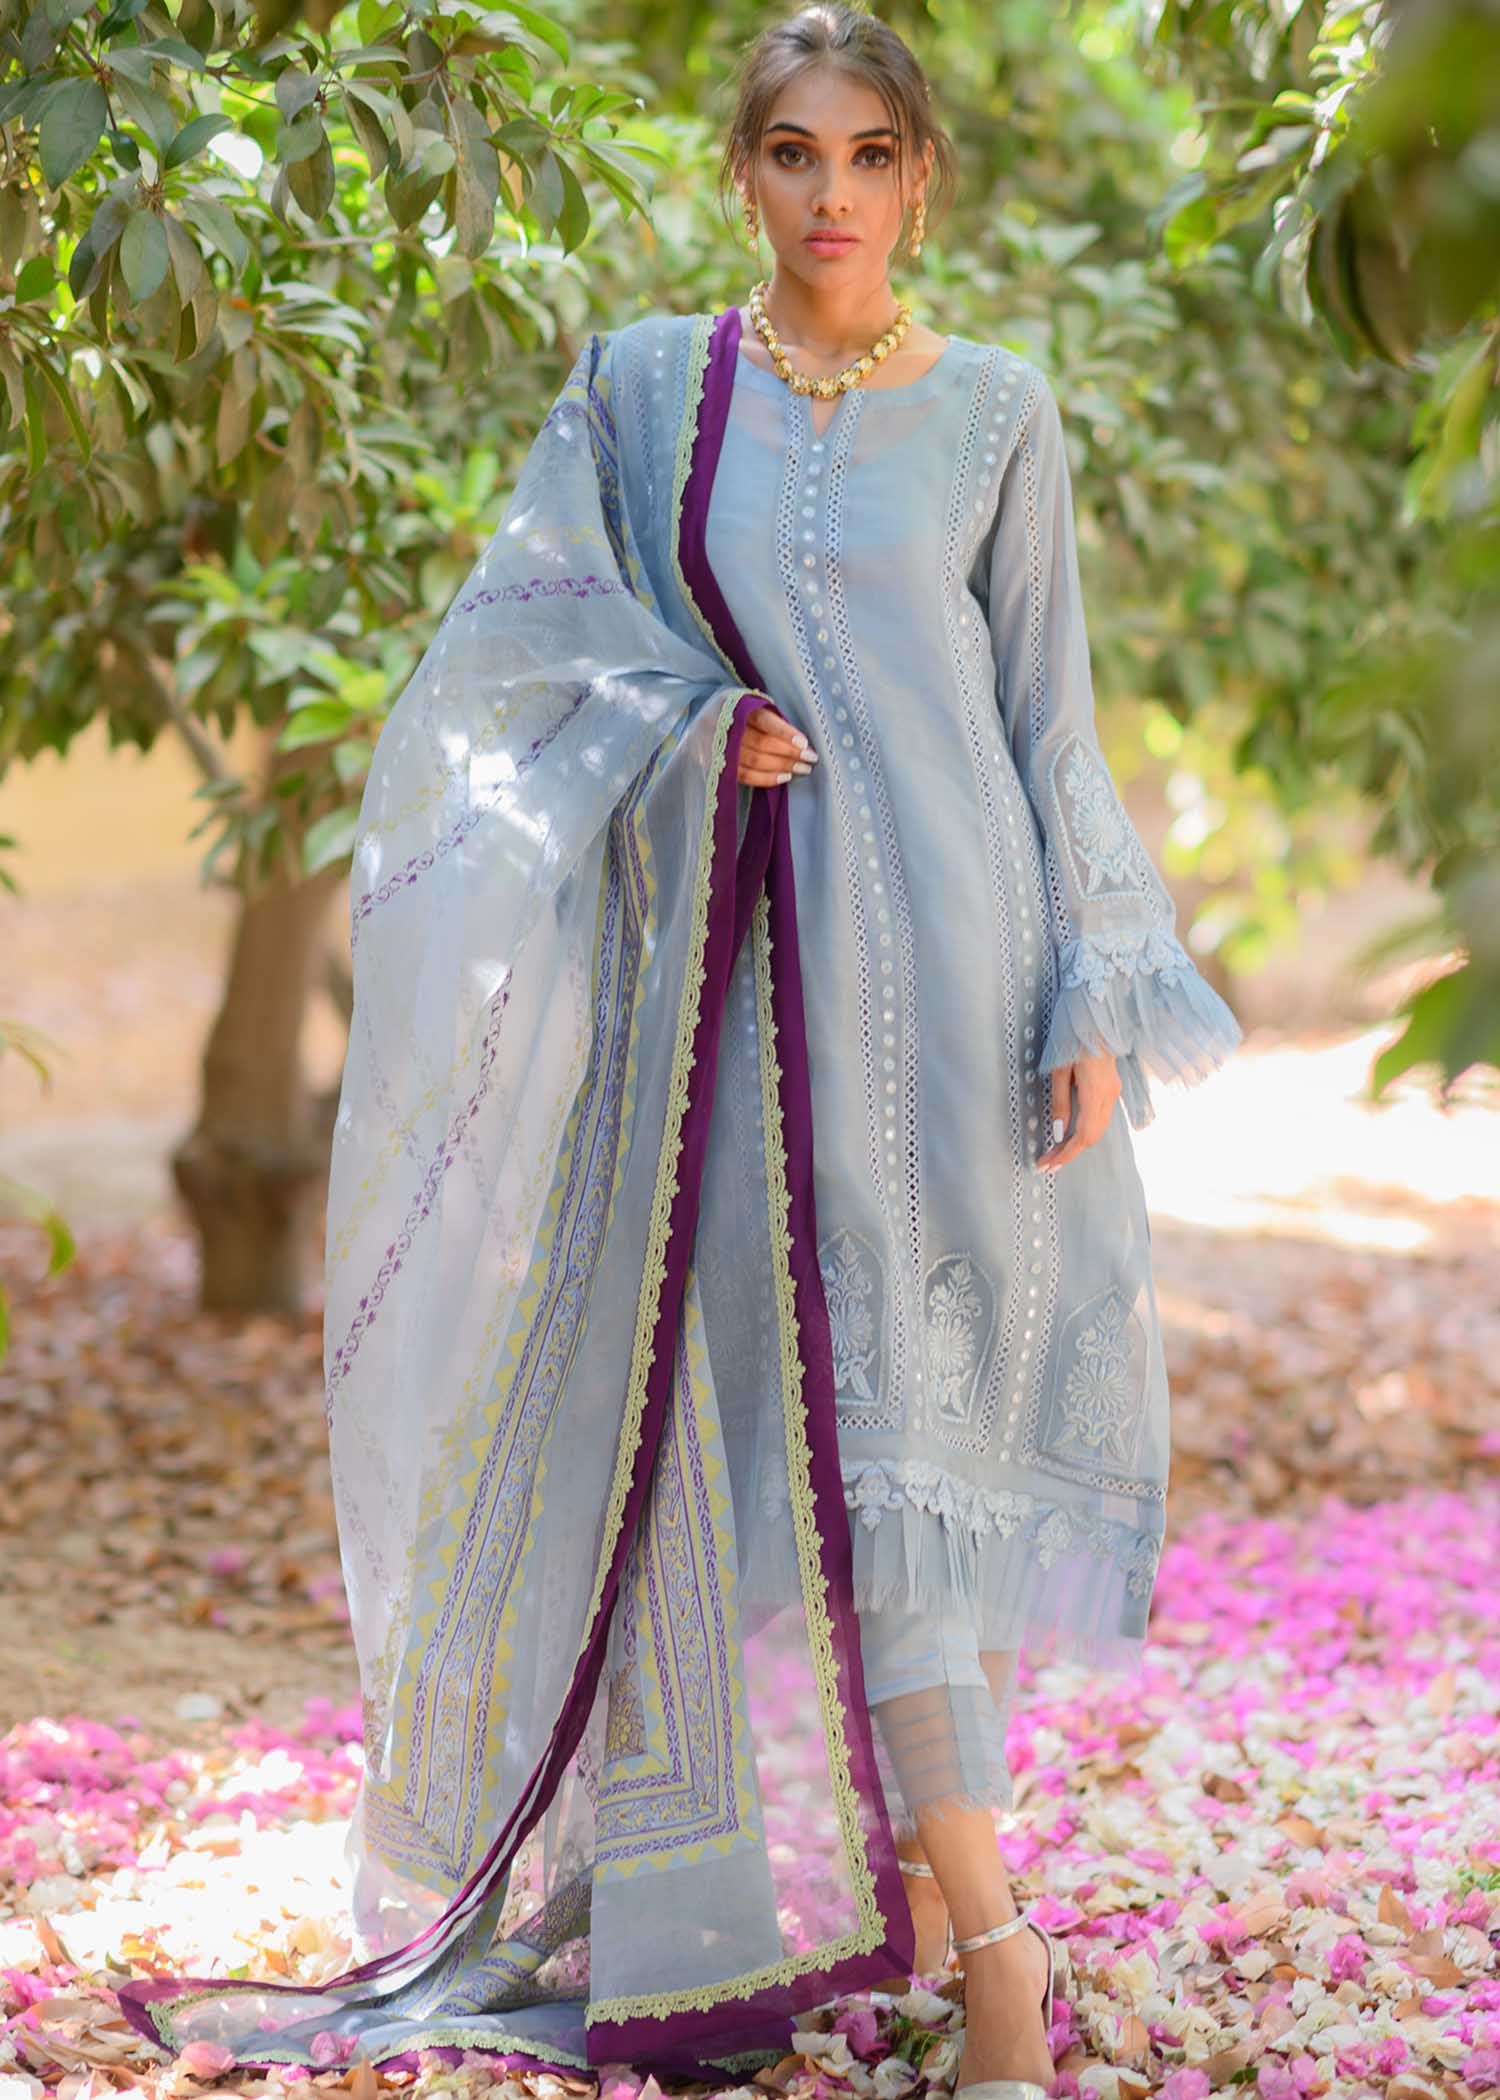 Self embroidered long shirt with pleats detail